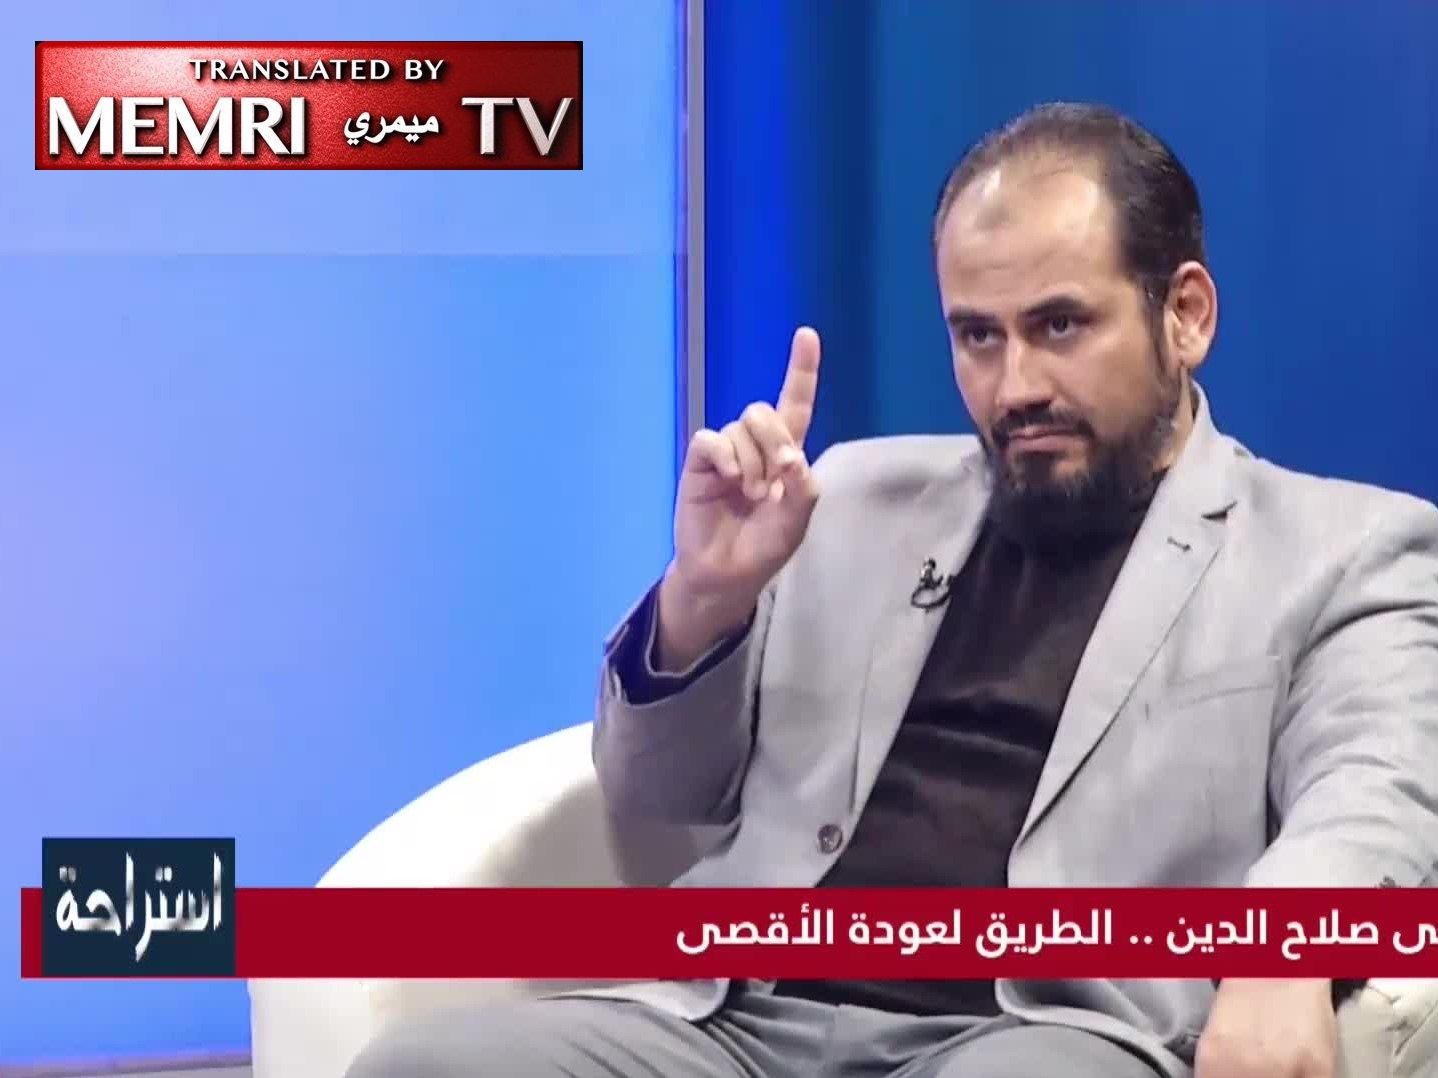 Libyan Researcher Dr. Ali Al-Siba'i Refers to Jews as